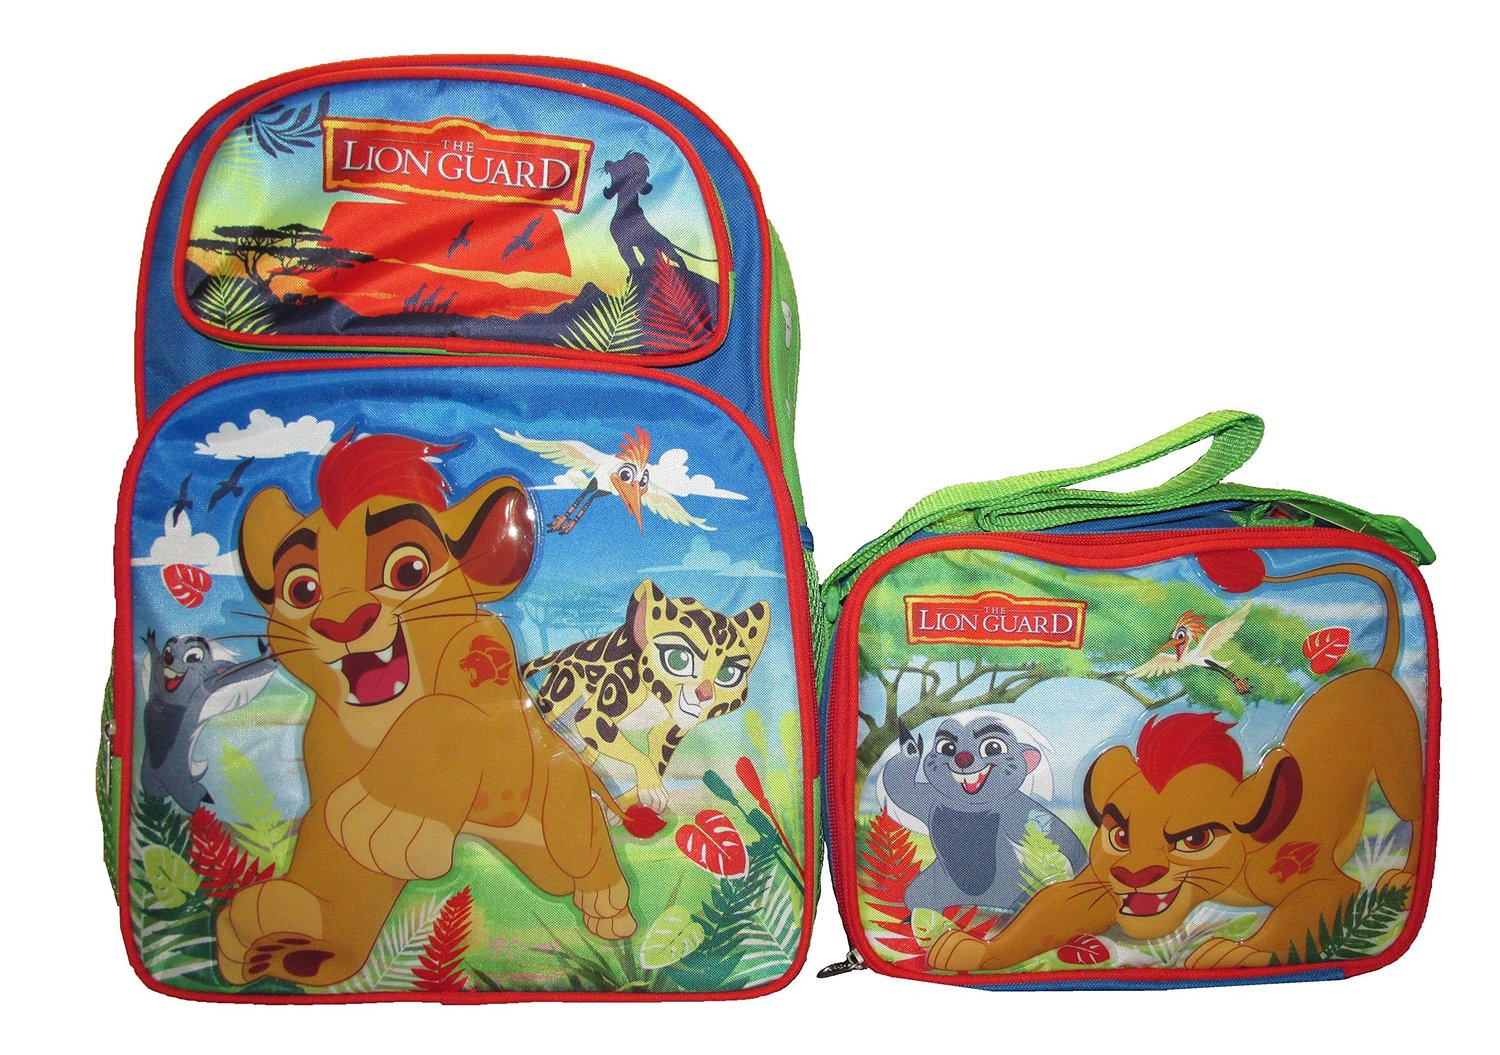 bbfcdd774c1 Get Quotations · Disney Lion King Guard 16 Inch Kids Large Backpack   Lunch  Bag Set - Combo